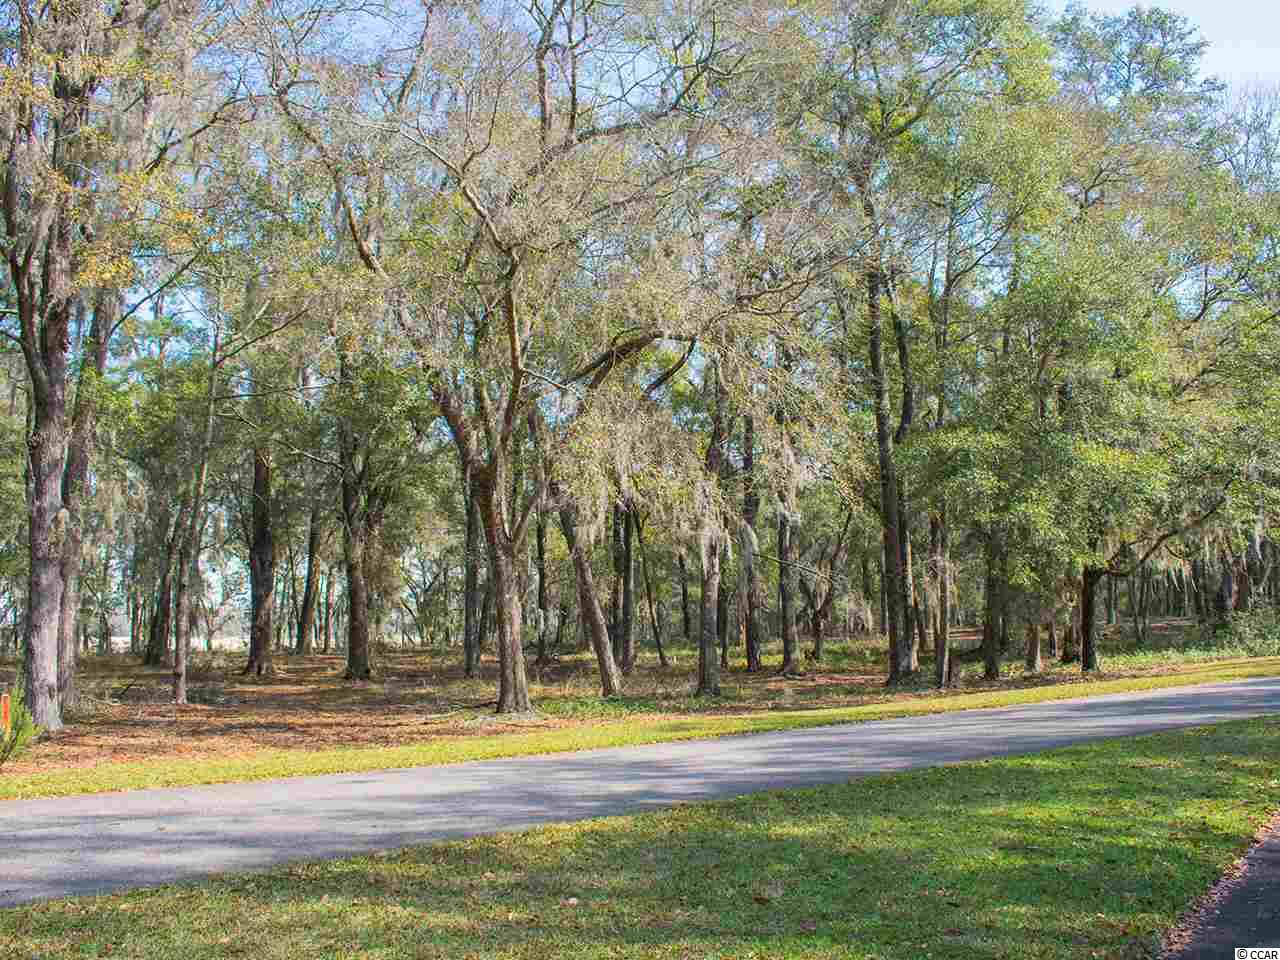 LOT 4 Rice Bluff Rd., Pawleys Island, South Carolina